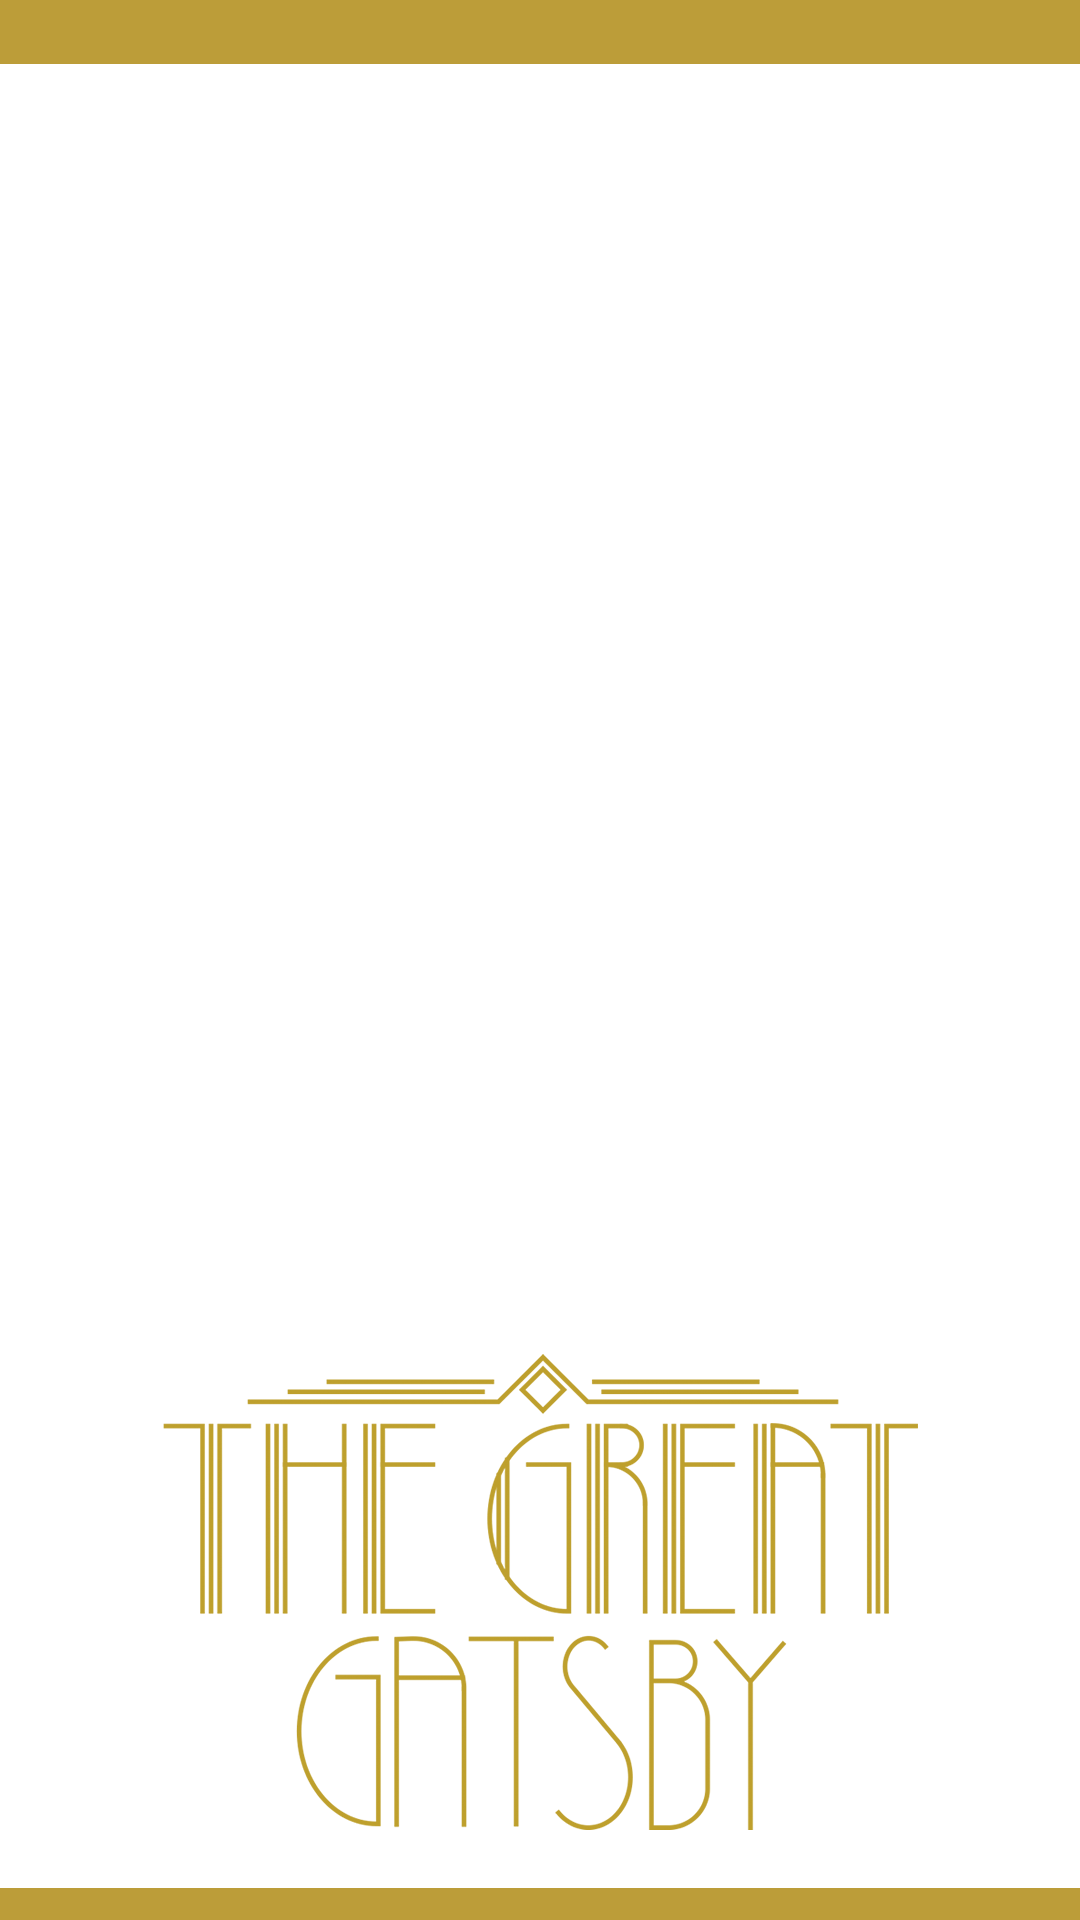 great gatsby wedding snapchat filter geofilter maker on filterpop. Black Bedroom Furniture Sets. Home Design Ideas